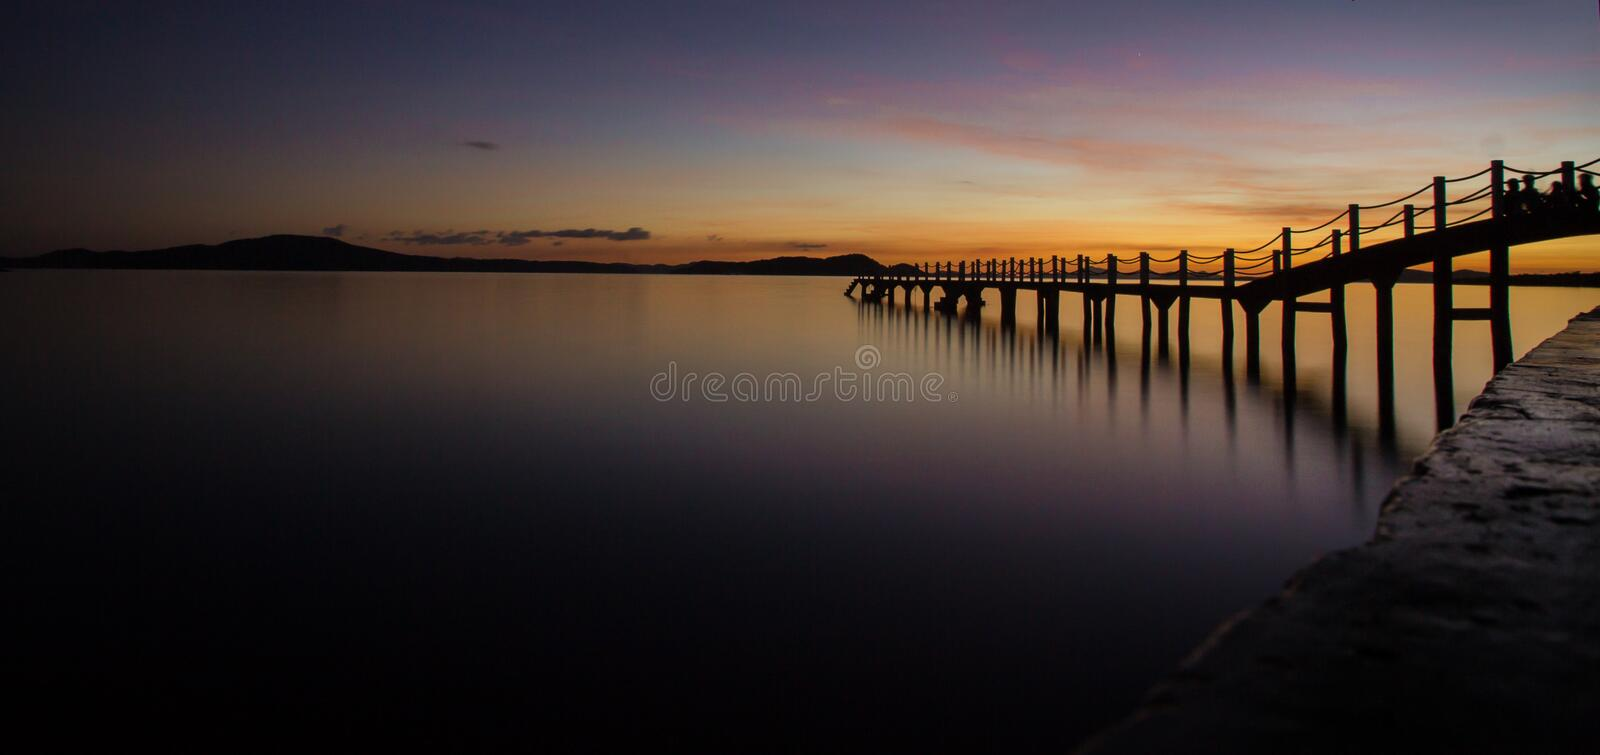 Another Sunset on a pier on Coron Island, Palawan, Philippines. royalty free stock photos